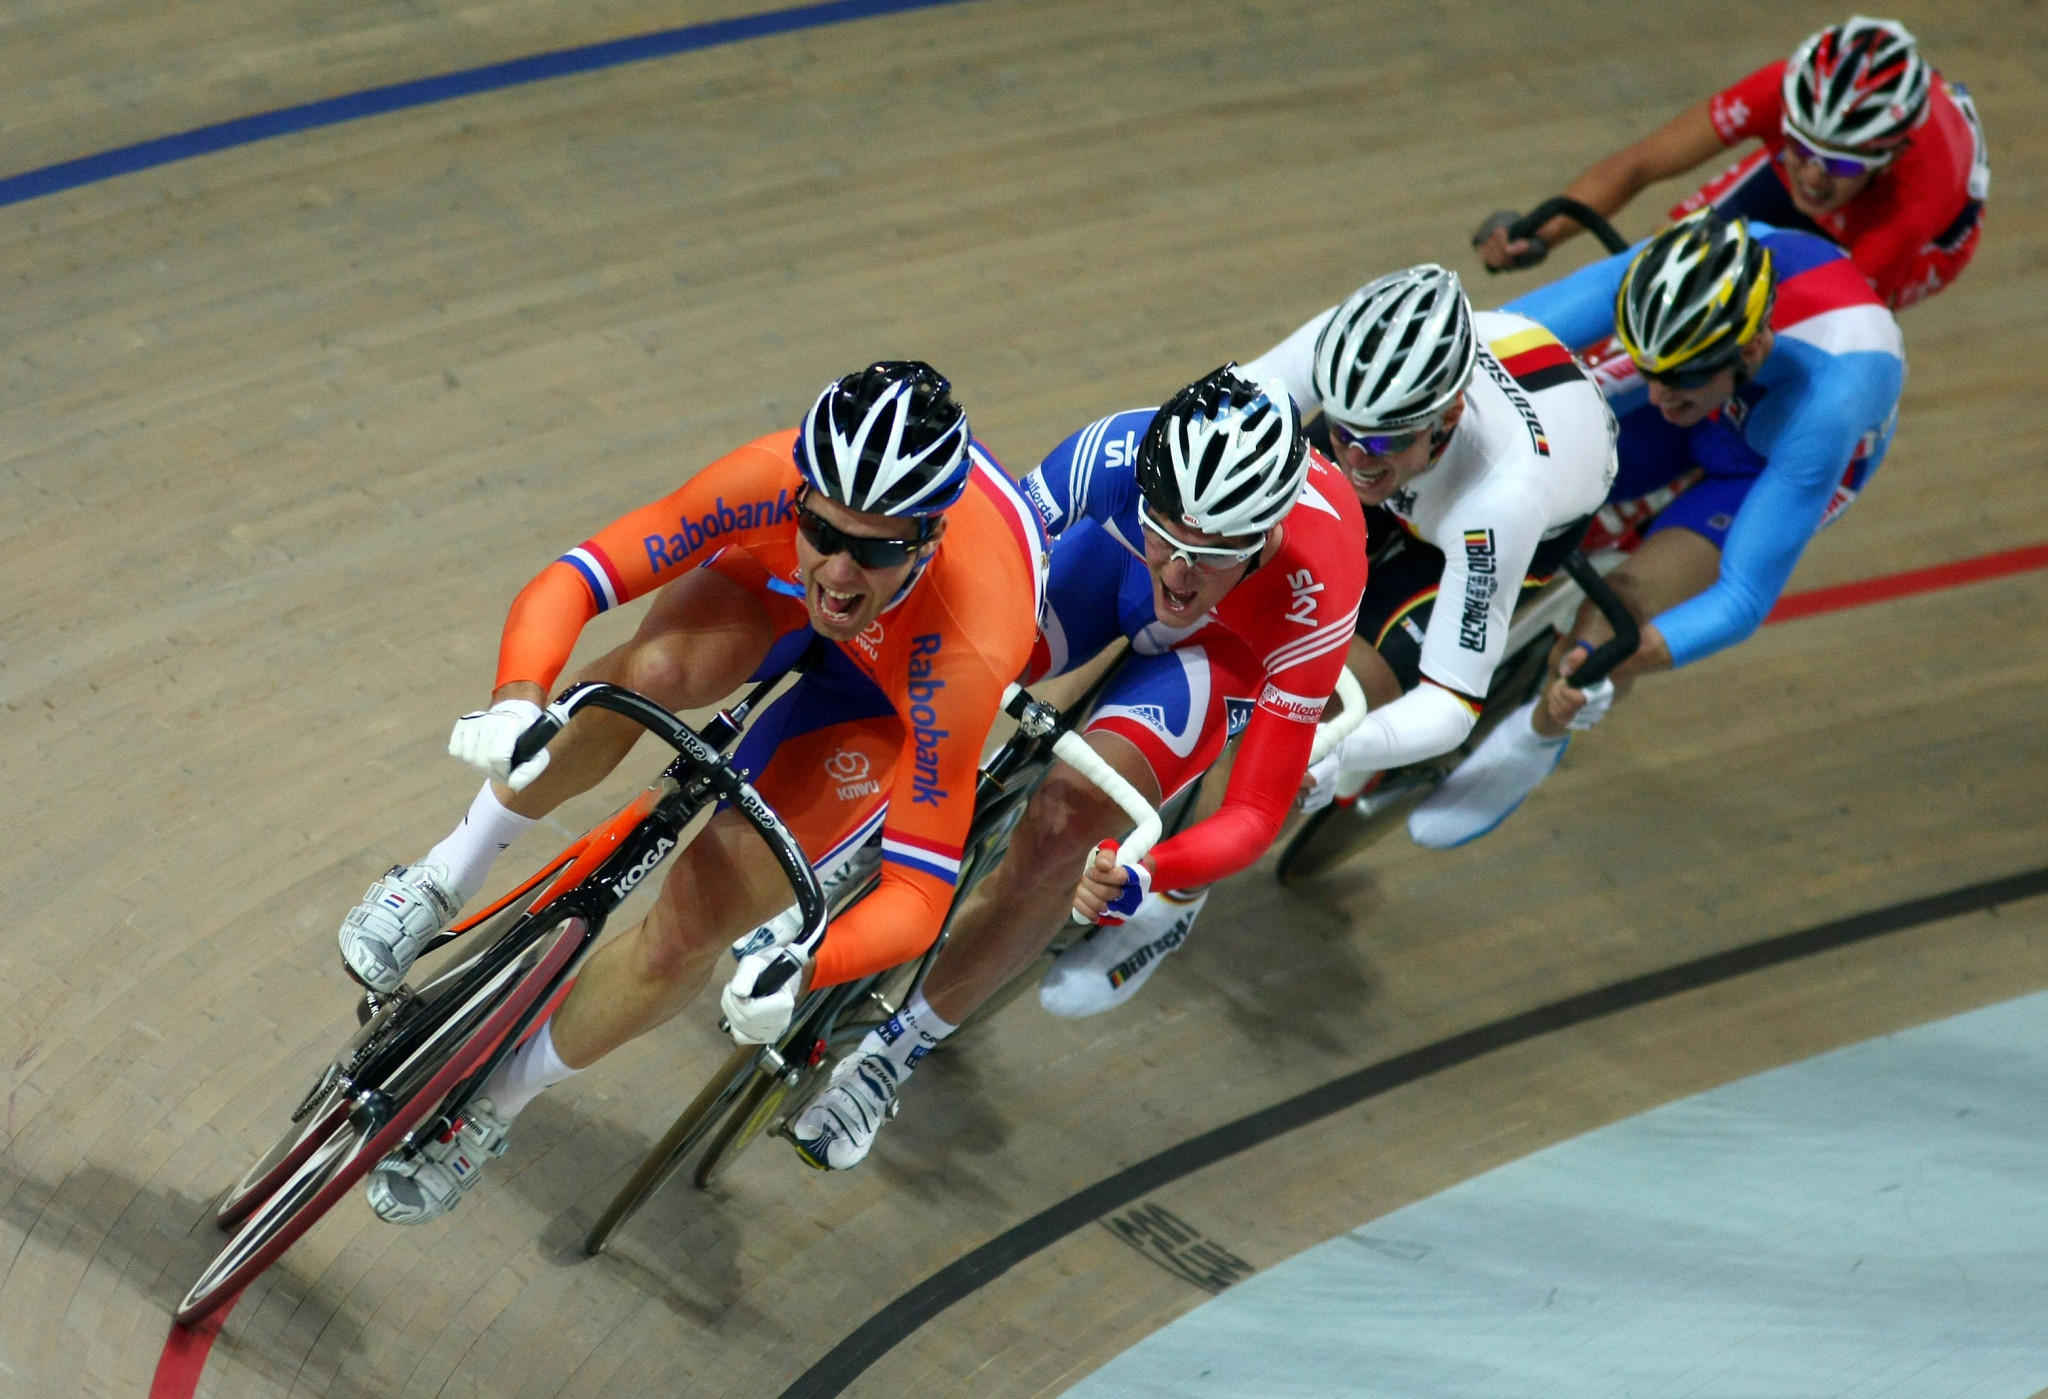 Pruszkow will host the World Track Cycling Championships for the first time in a decade in 2019 ©Getty Images